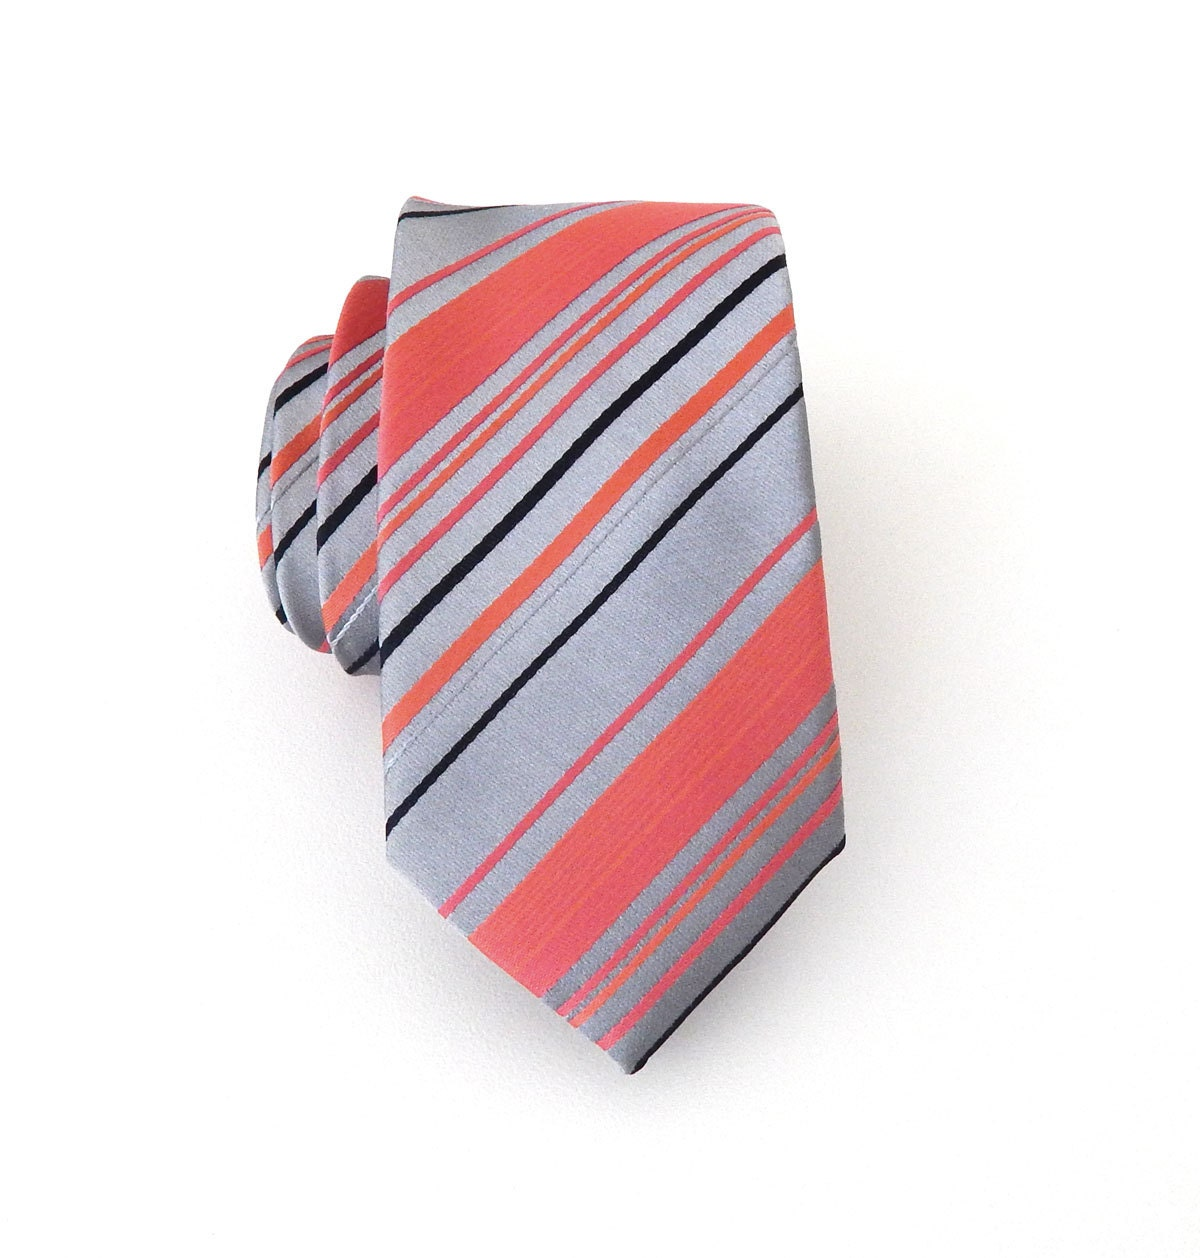 Find a Silk Coral Tie, Textured Coral or Patterned Coral Tie, at Macy's. Macy's Presents: The Edit - A curated mix of fashion and inspiration Check It Out Free Shipping with $99 purchase + Free Store Pickup.